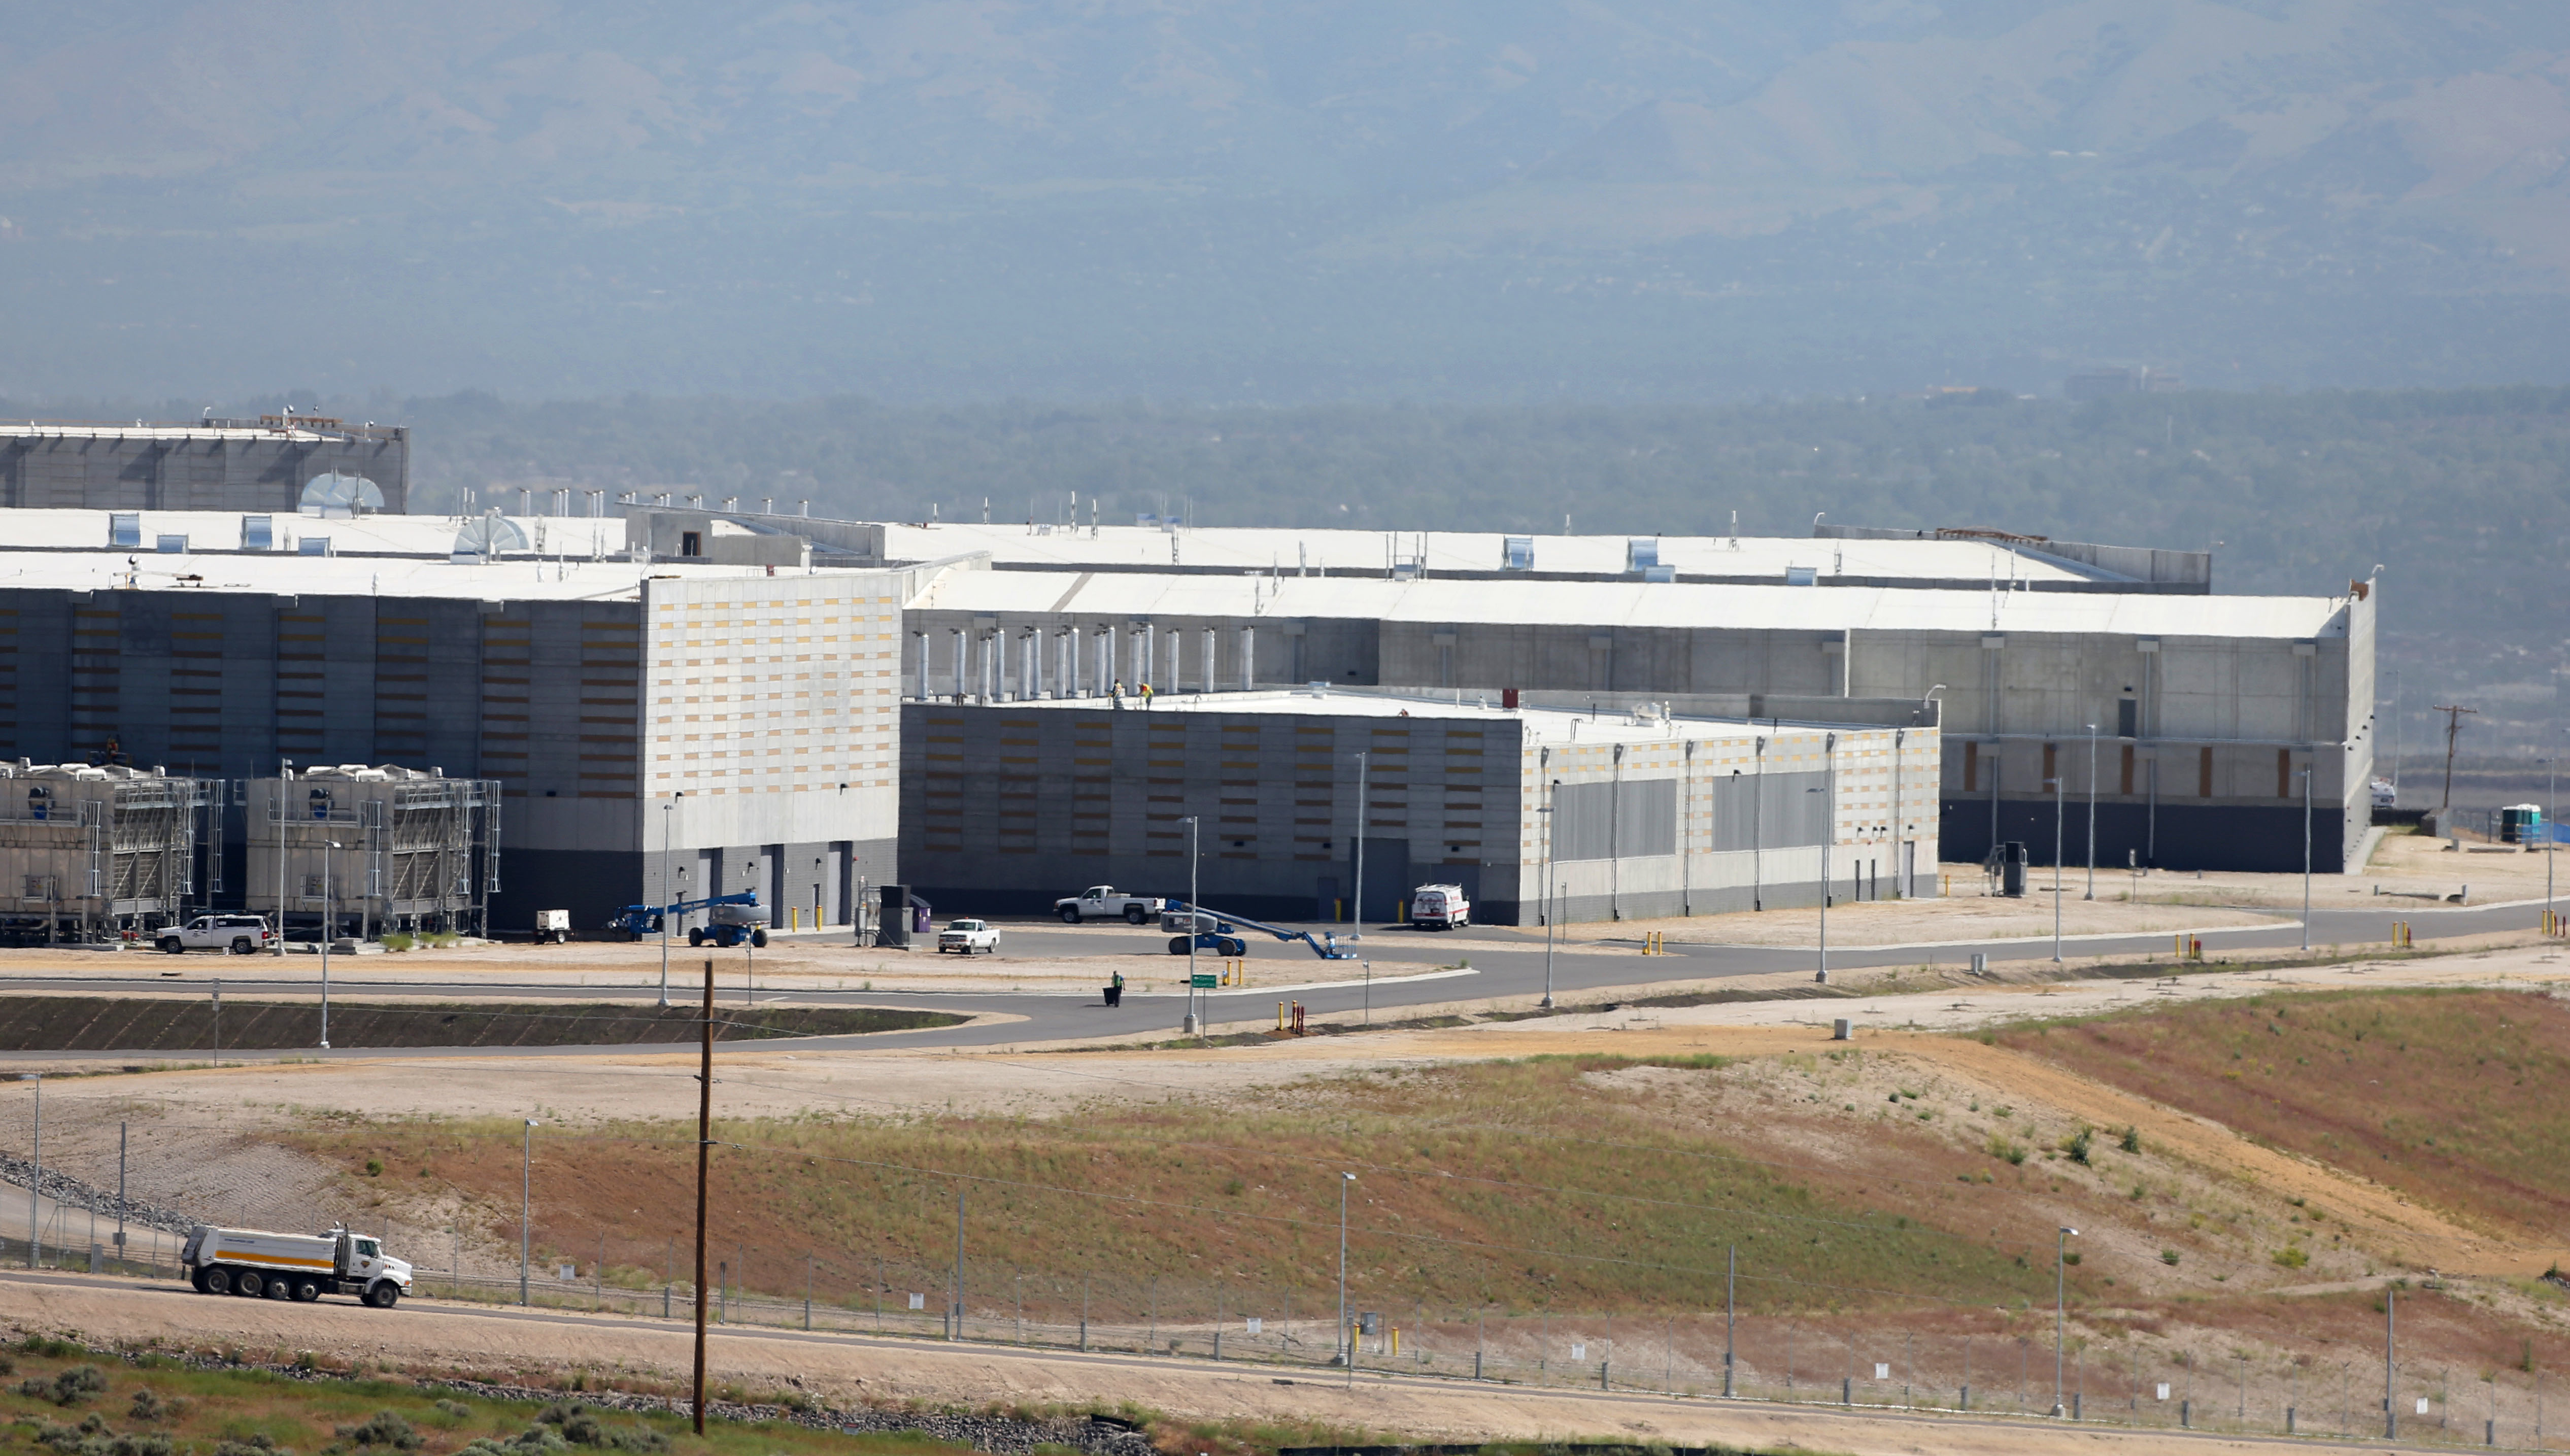 A portion of the NSA's mammoth data center in Bluffdale, Utah, scheduled to open this fall.